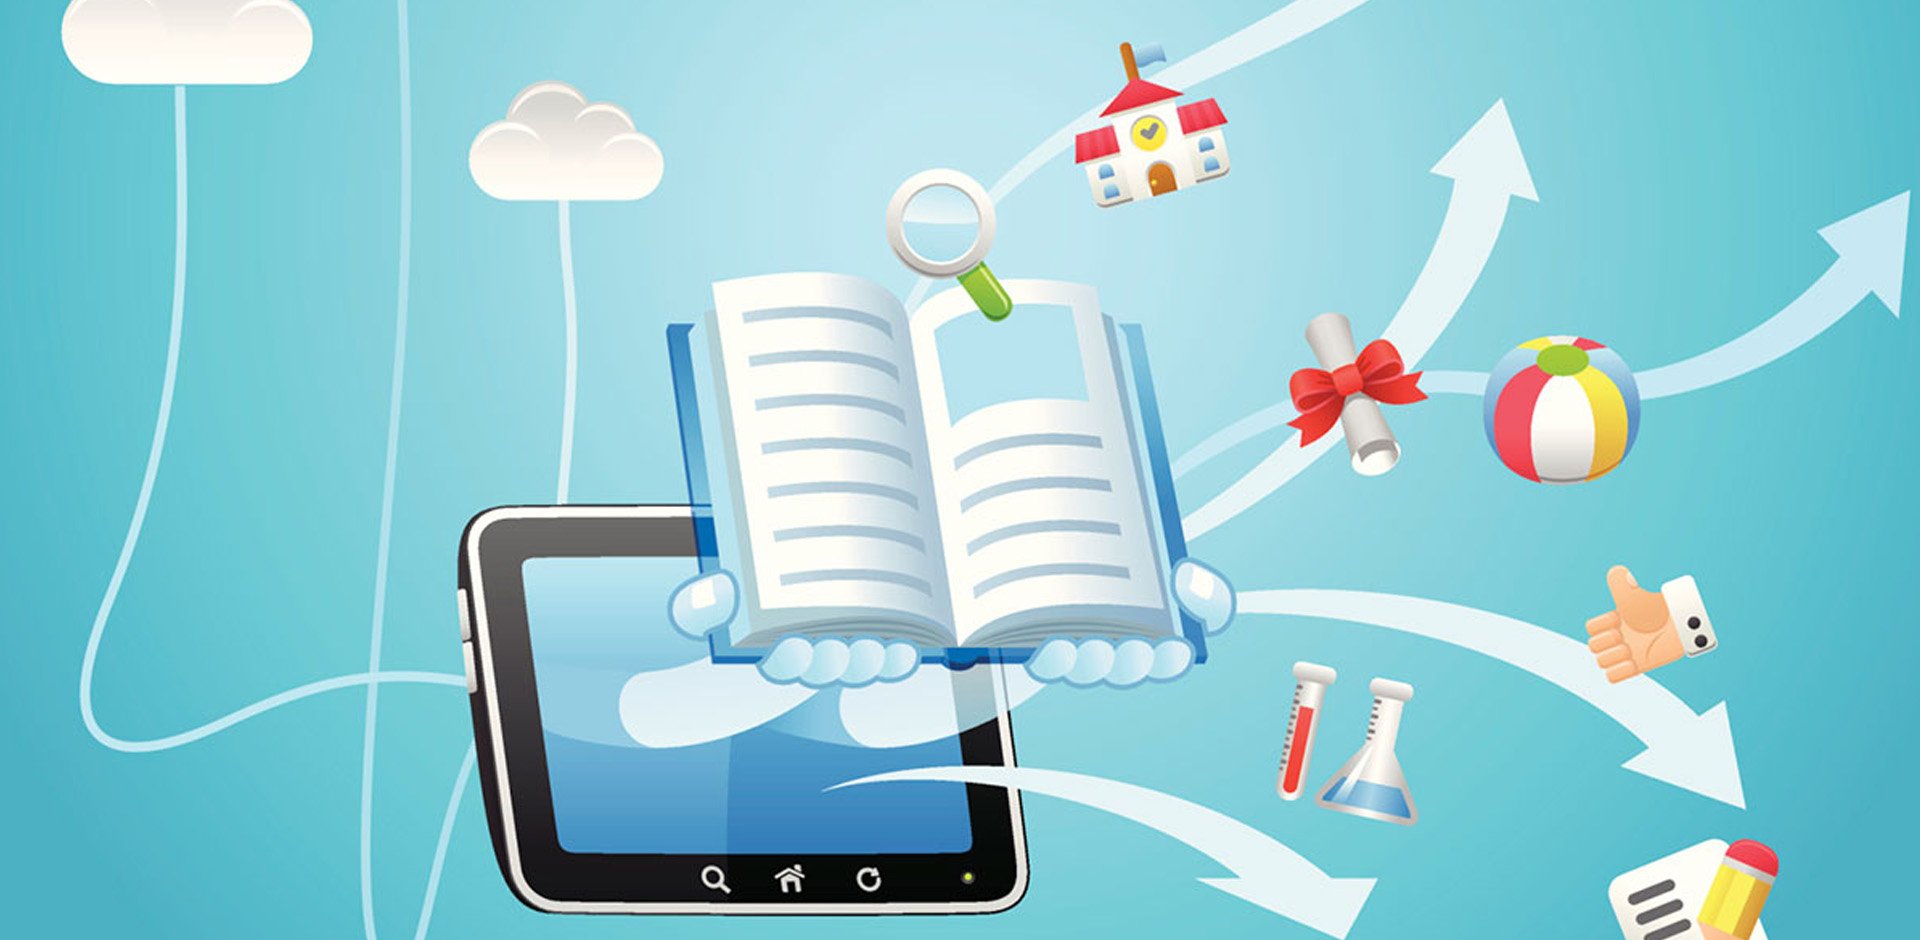 Joyful Educational App for your Android Phone